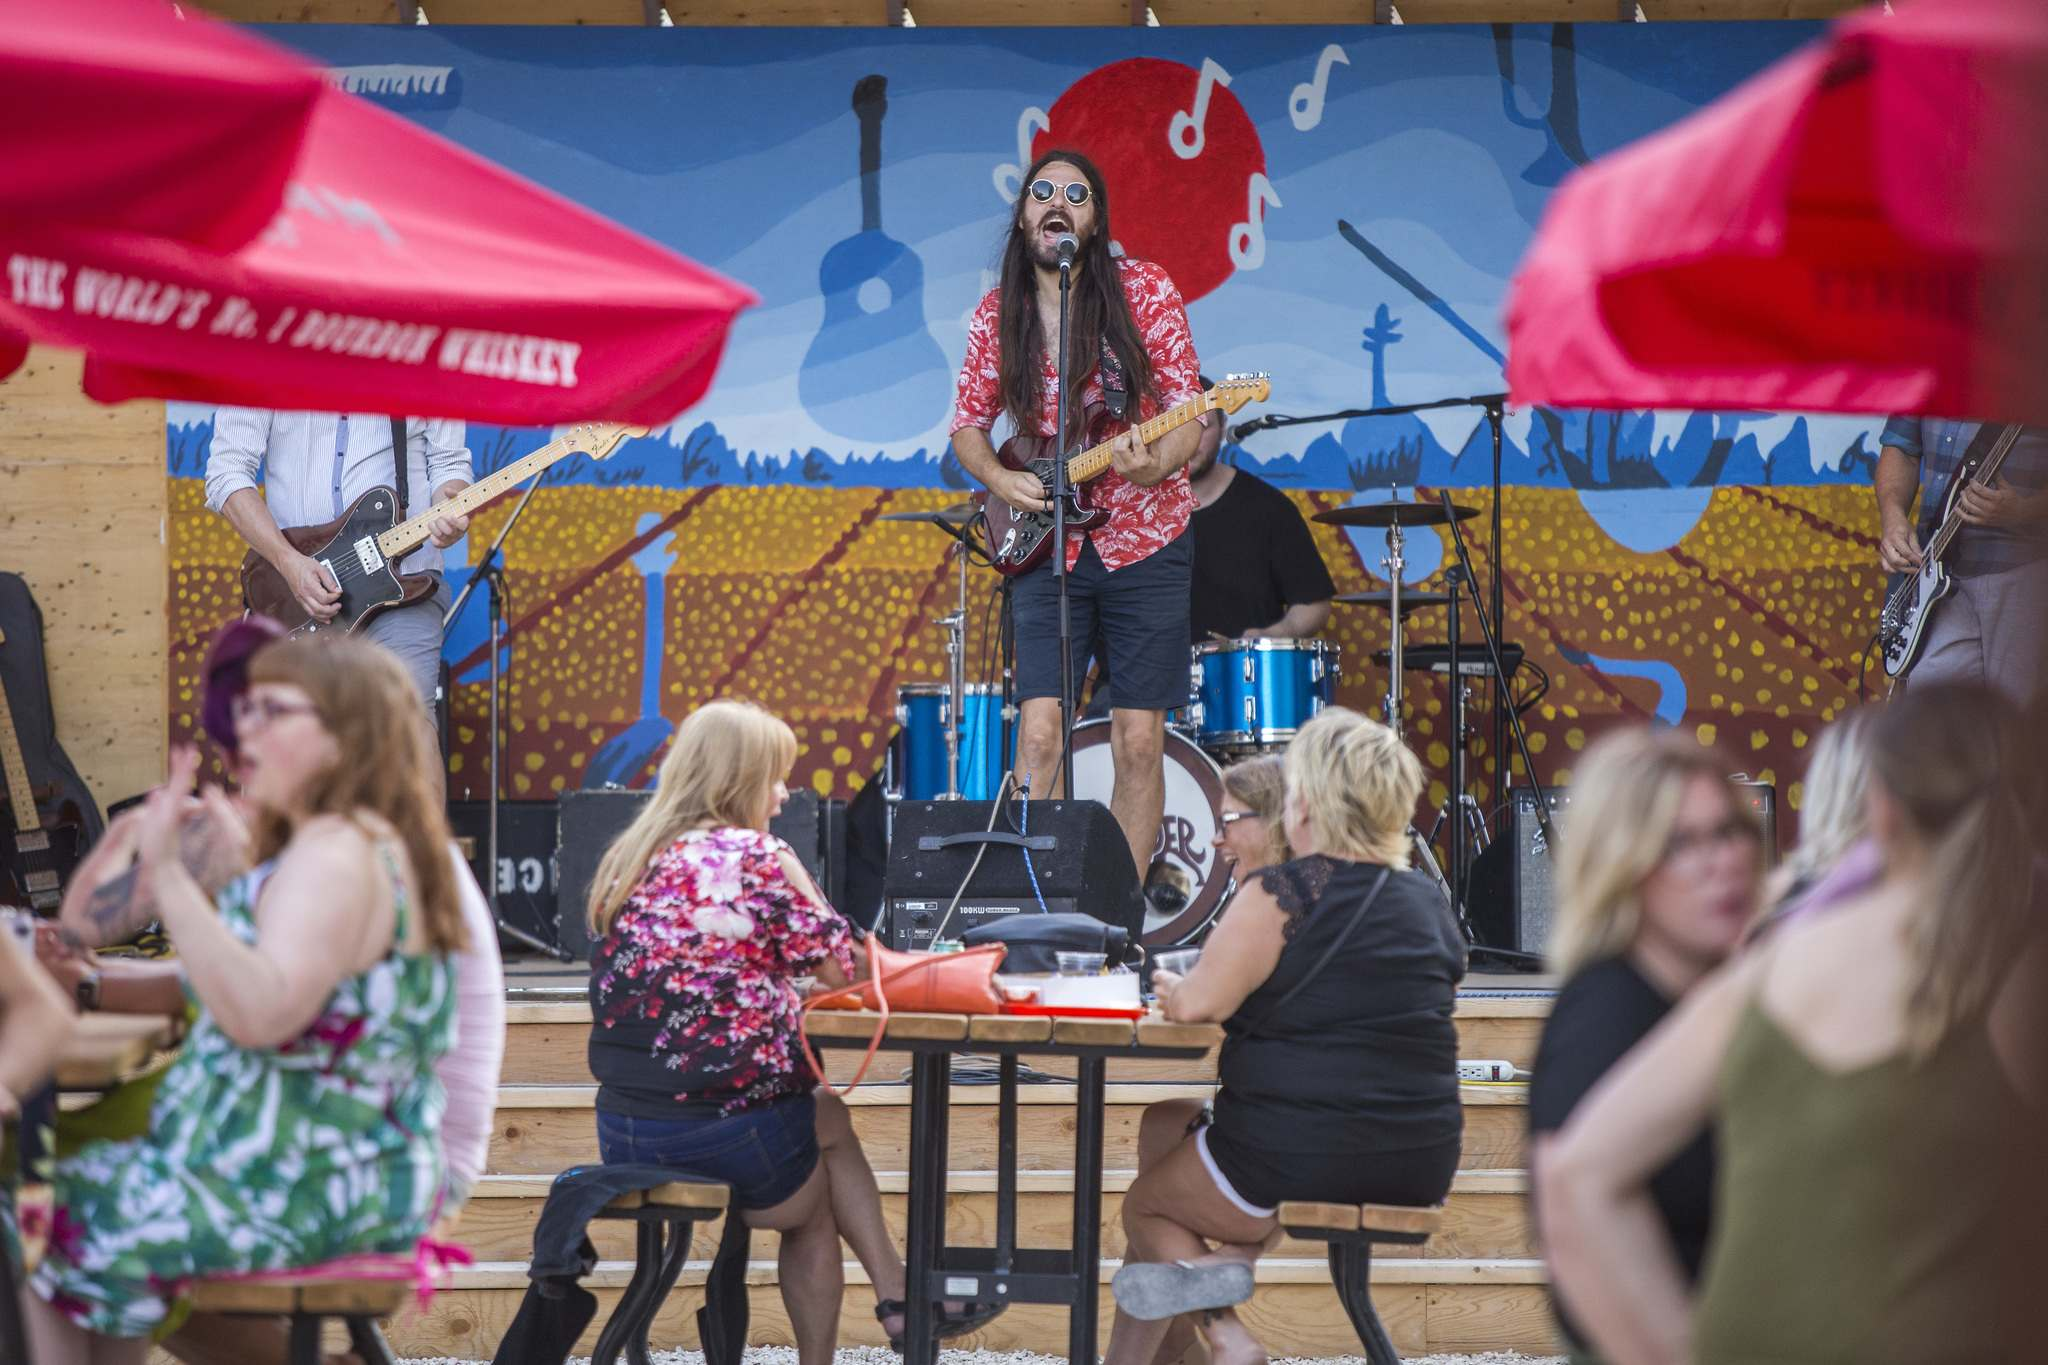 Bobby Desjarlais sings as his band, Bullrider, plays to a packed house at Blue Note Park in Winnipeg. (Mikaela MacKenzie / Winnipeg Free Press)